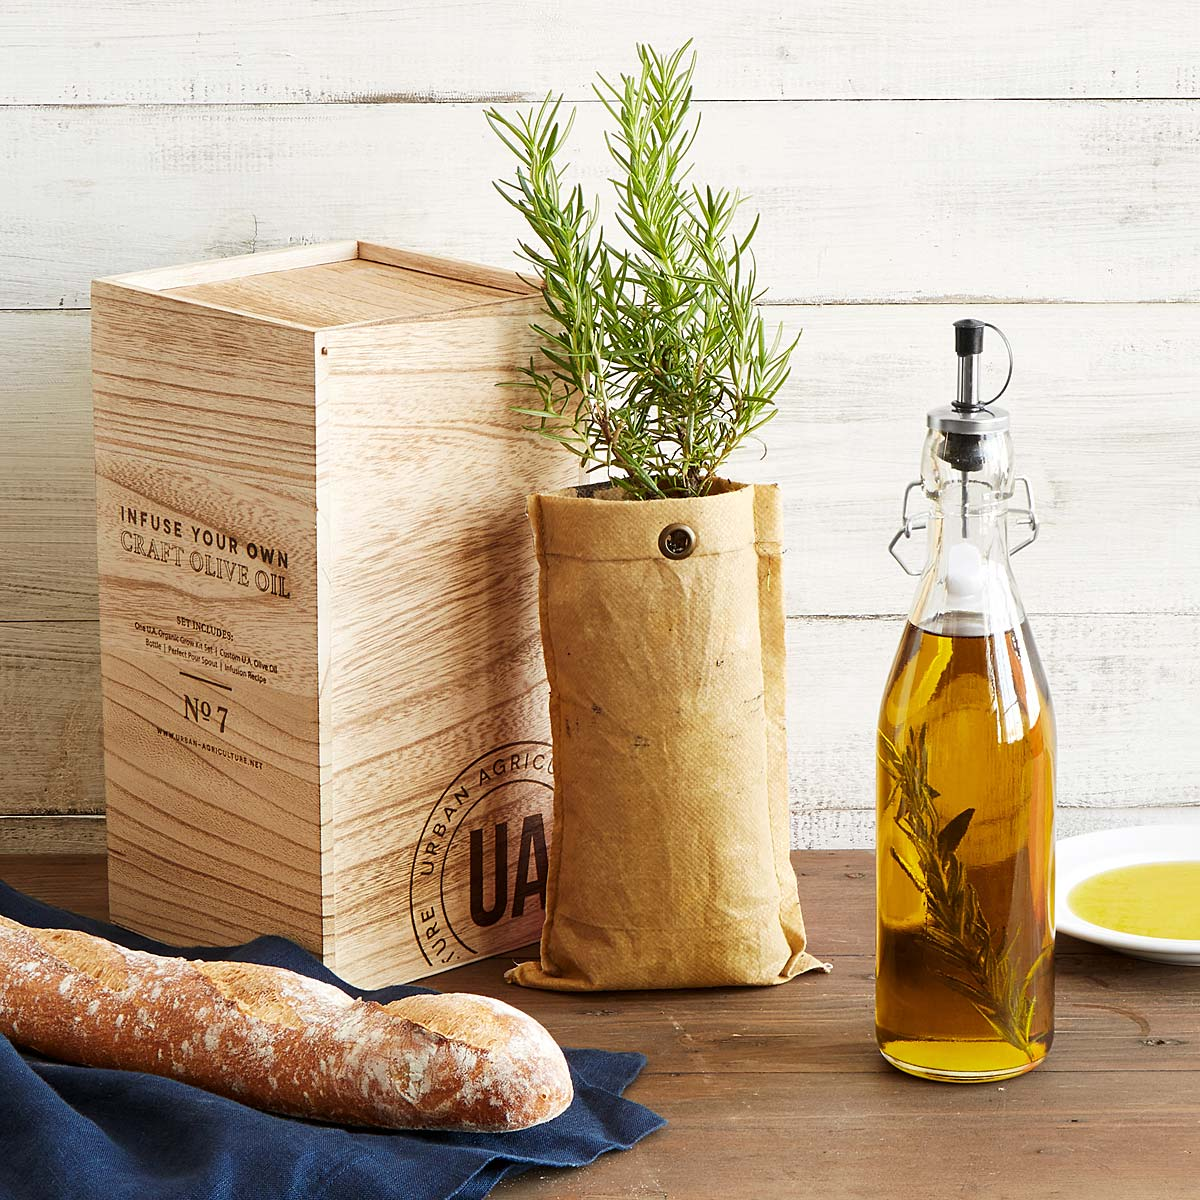 grow-infuse-olive-oil-kit